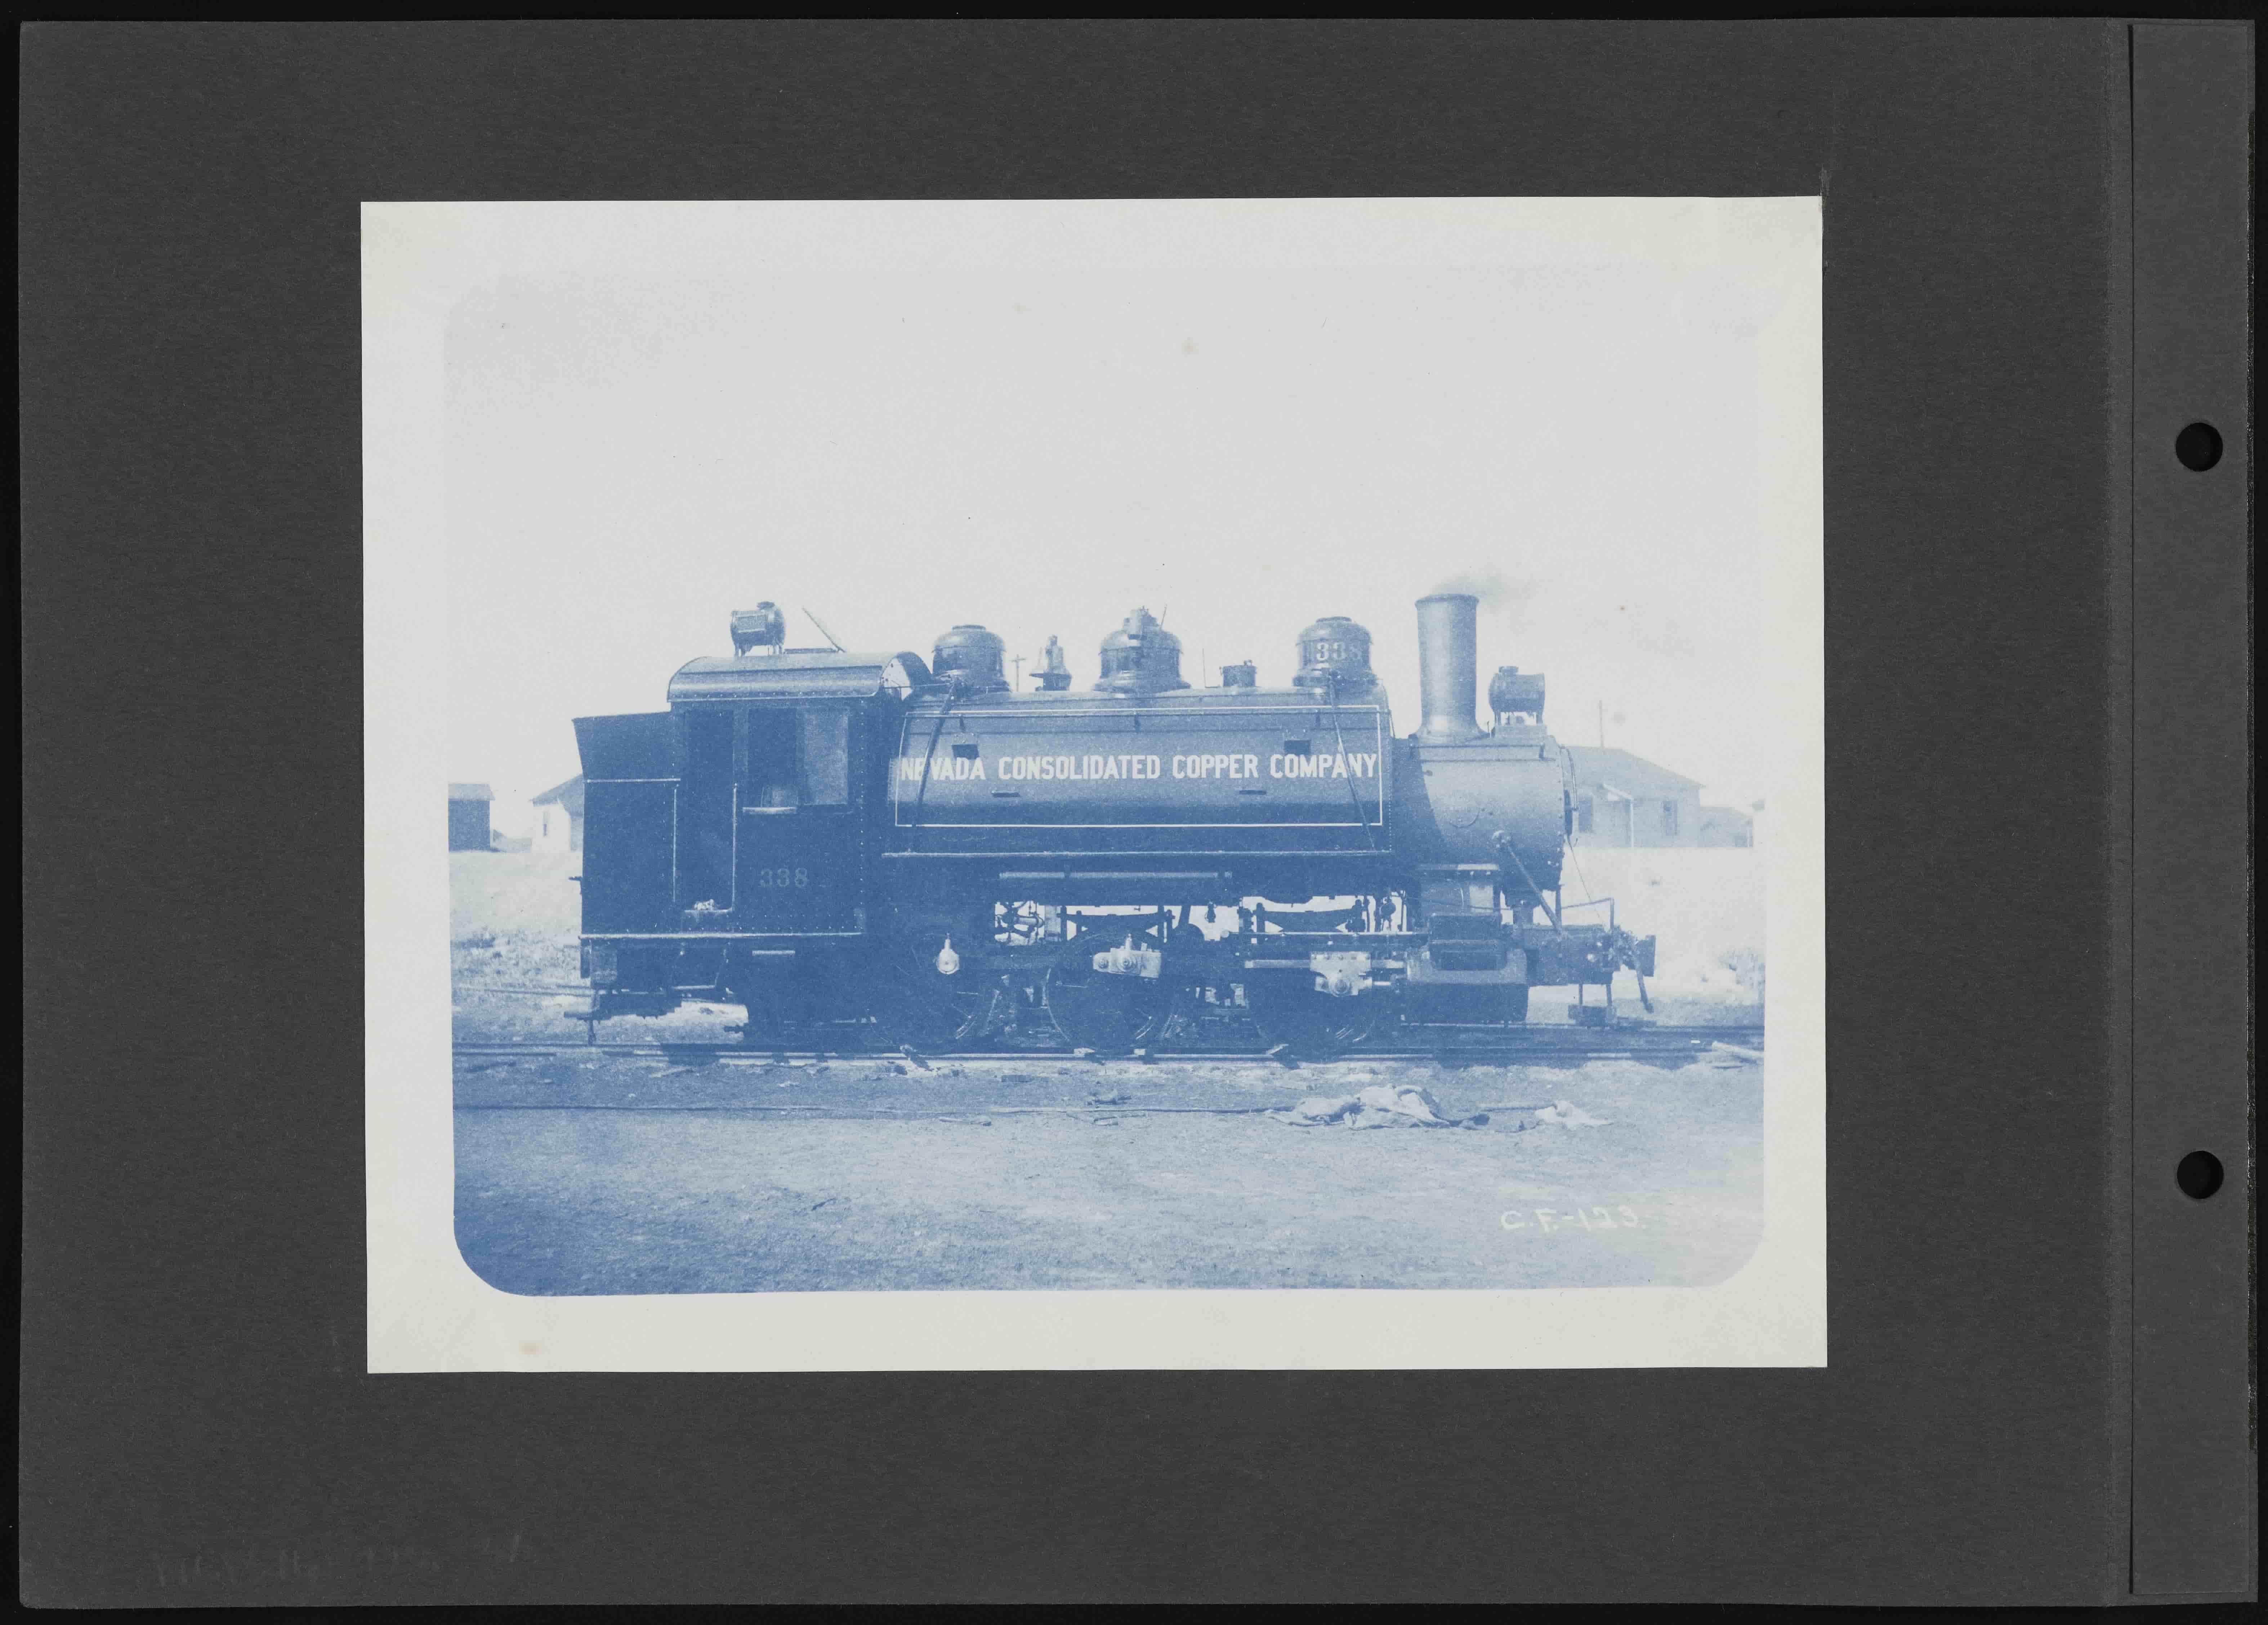 From the Nevada Consolidated Copper Company Collection: Nevada Consolidated Copper Train